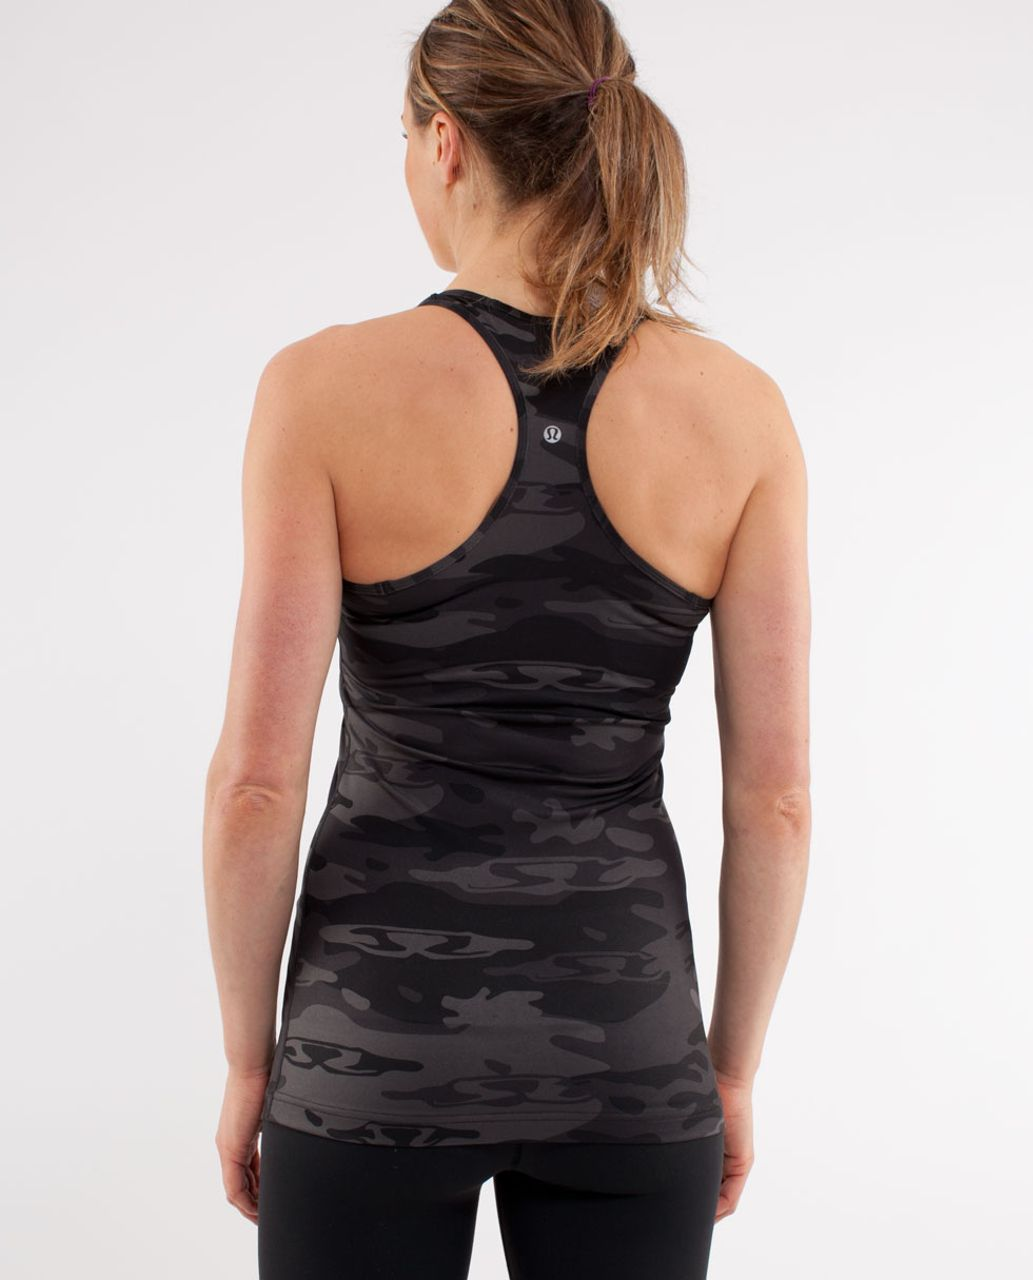 Lululemon Cool Racerback - Black /  Retro Camo